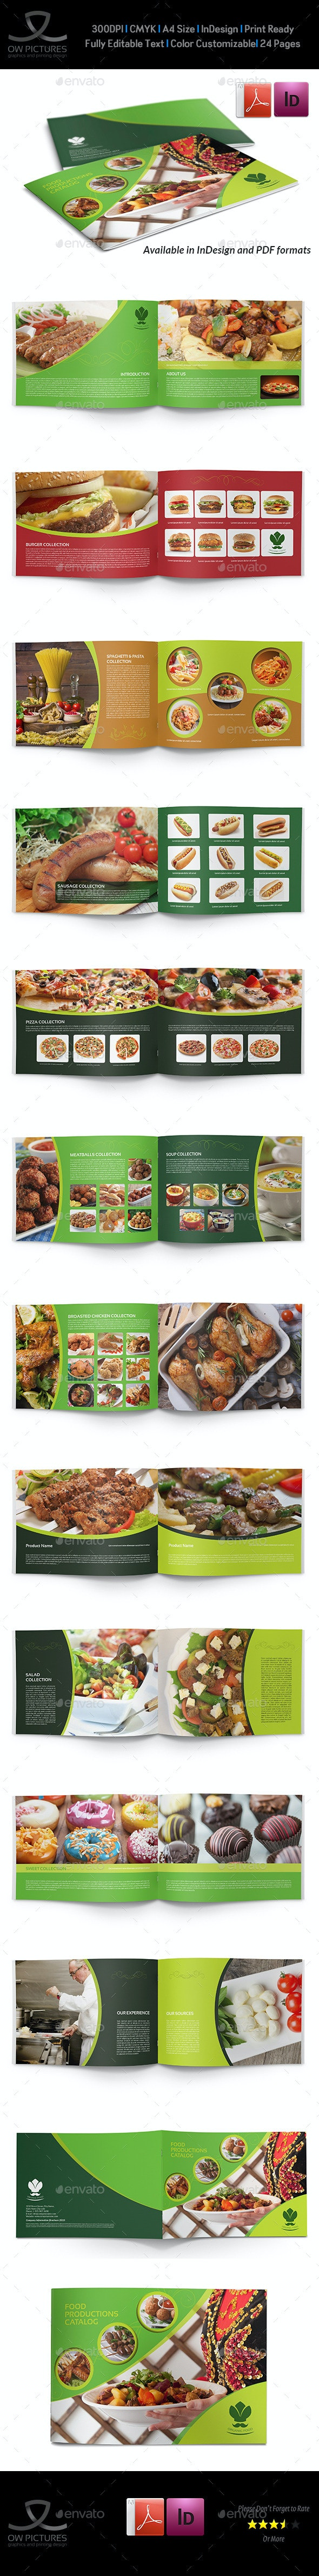 Food Products Catalog Brochure Template - 24 Pages - Catalogs Brochures